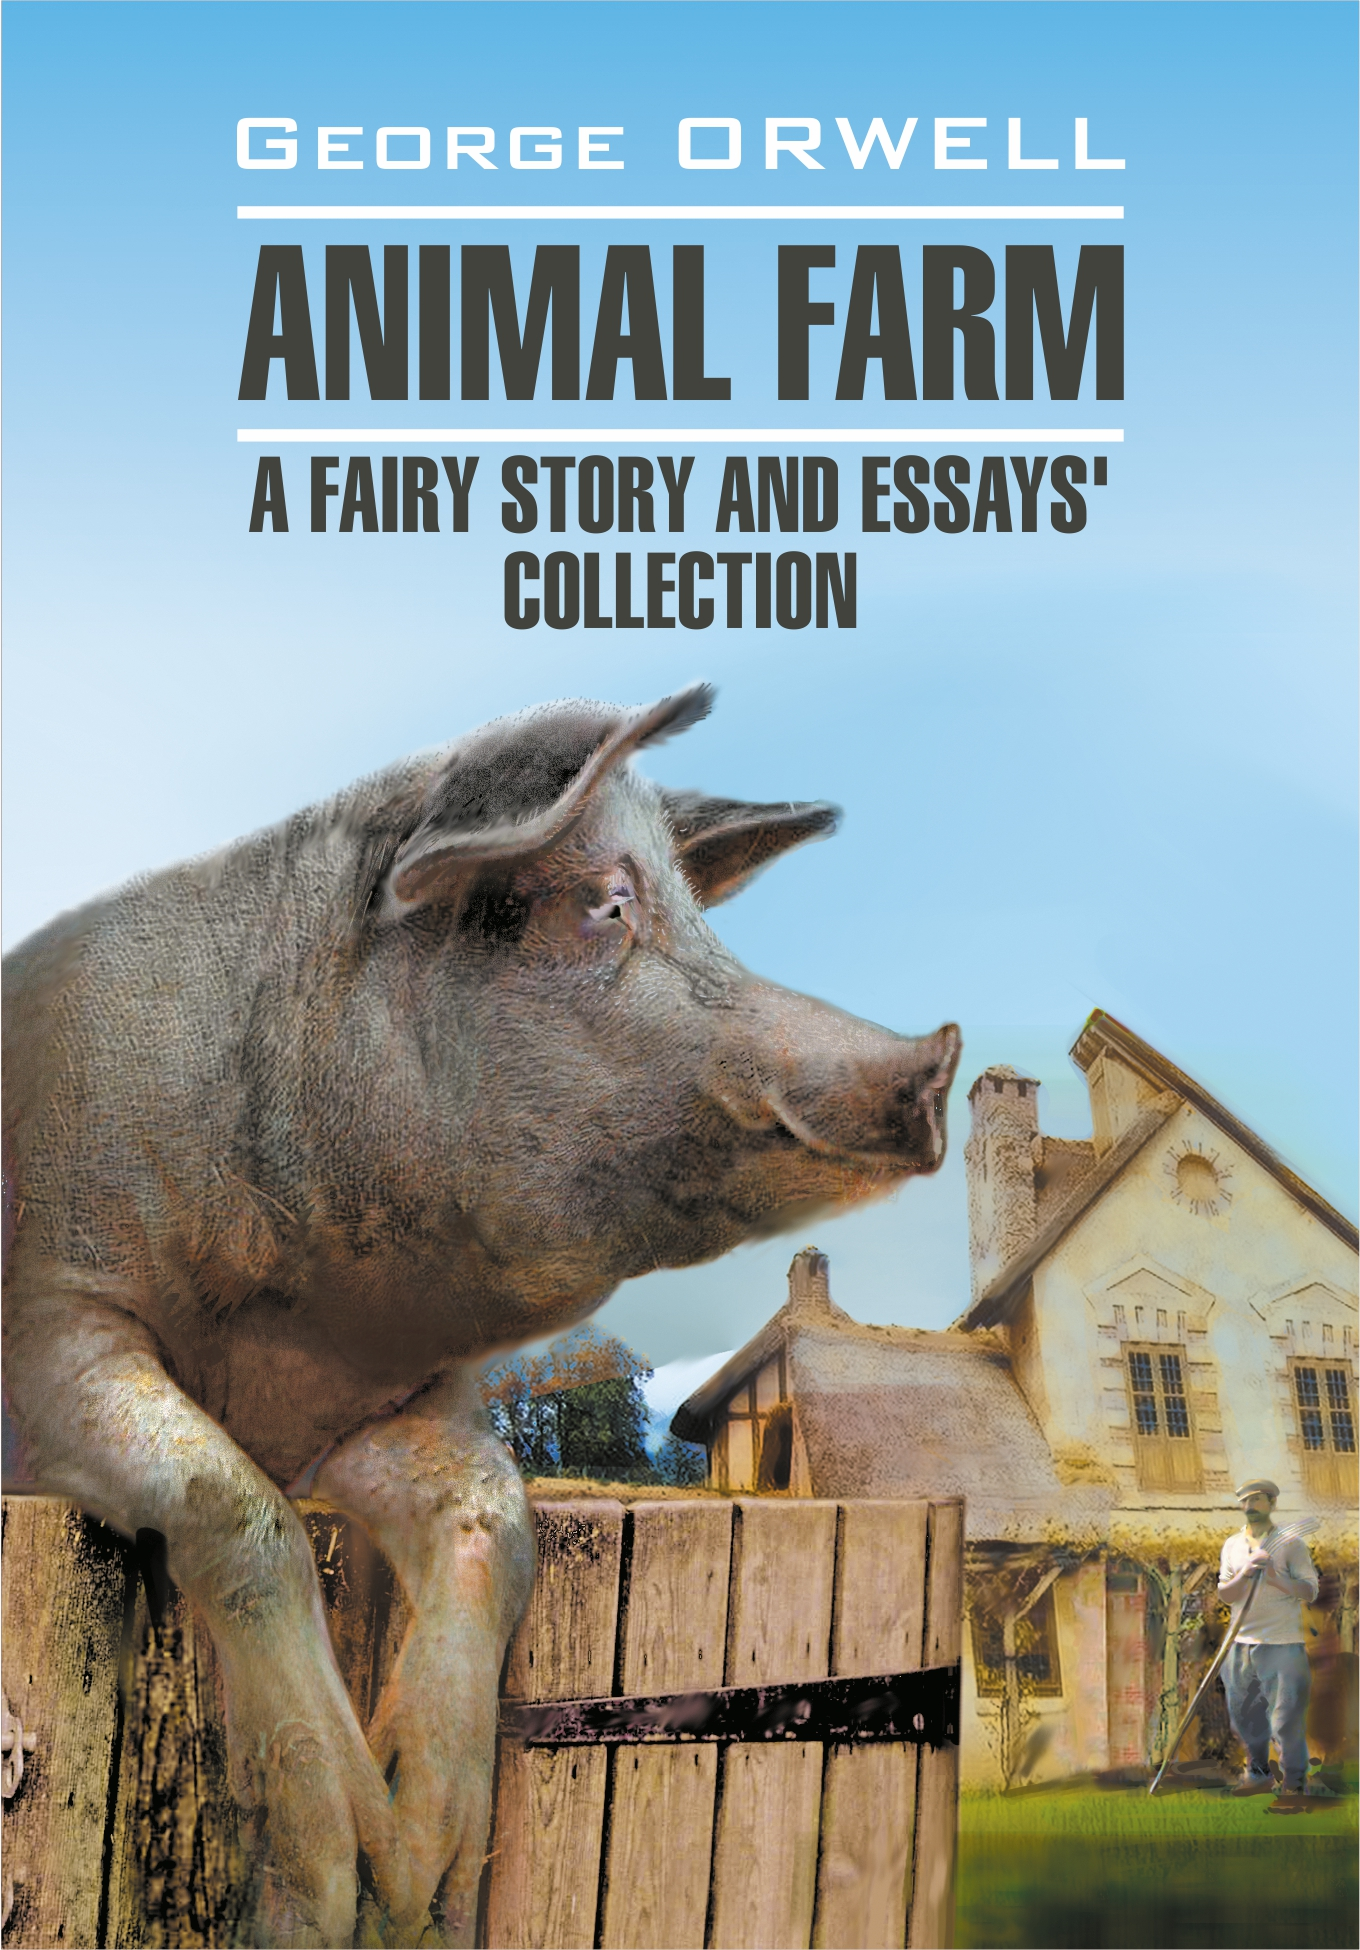 Джордж Оруэлл Animal Farm: a Fairy Story and Essay's Collection / Скотный двор и сборник эссе. Книга для чтения на английском языке